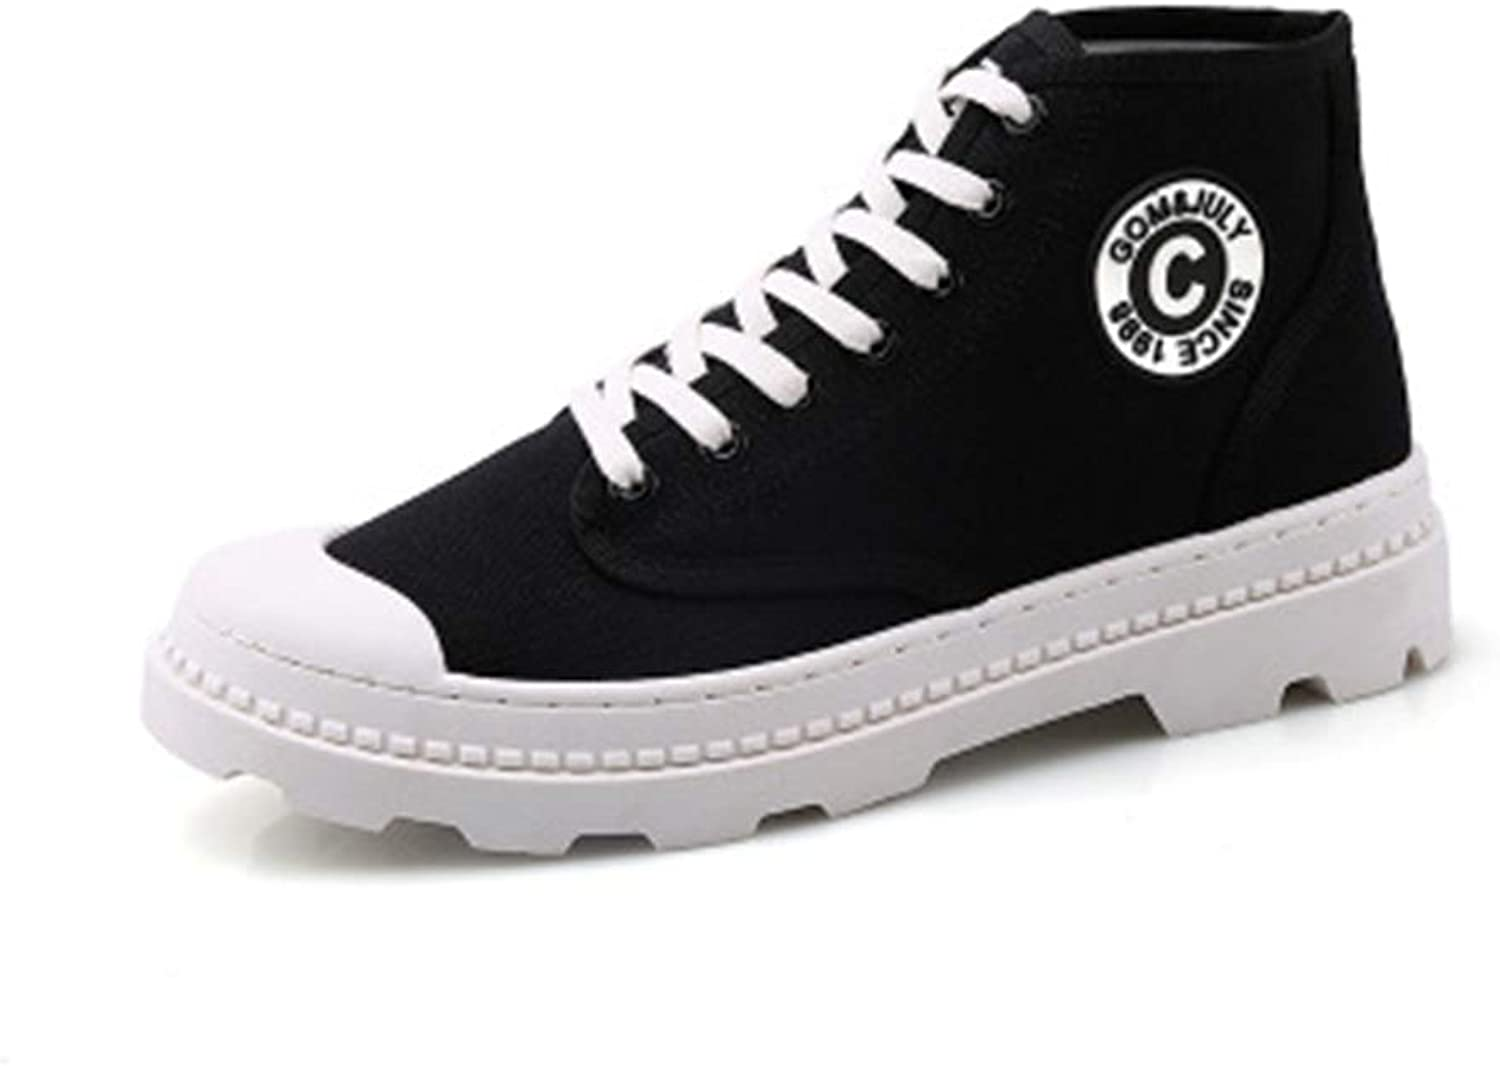 LYLIFE Comfort School Fashion Street Style High Top Canvas Sneakers Sports shoes